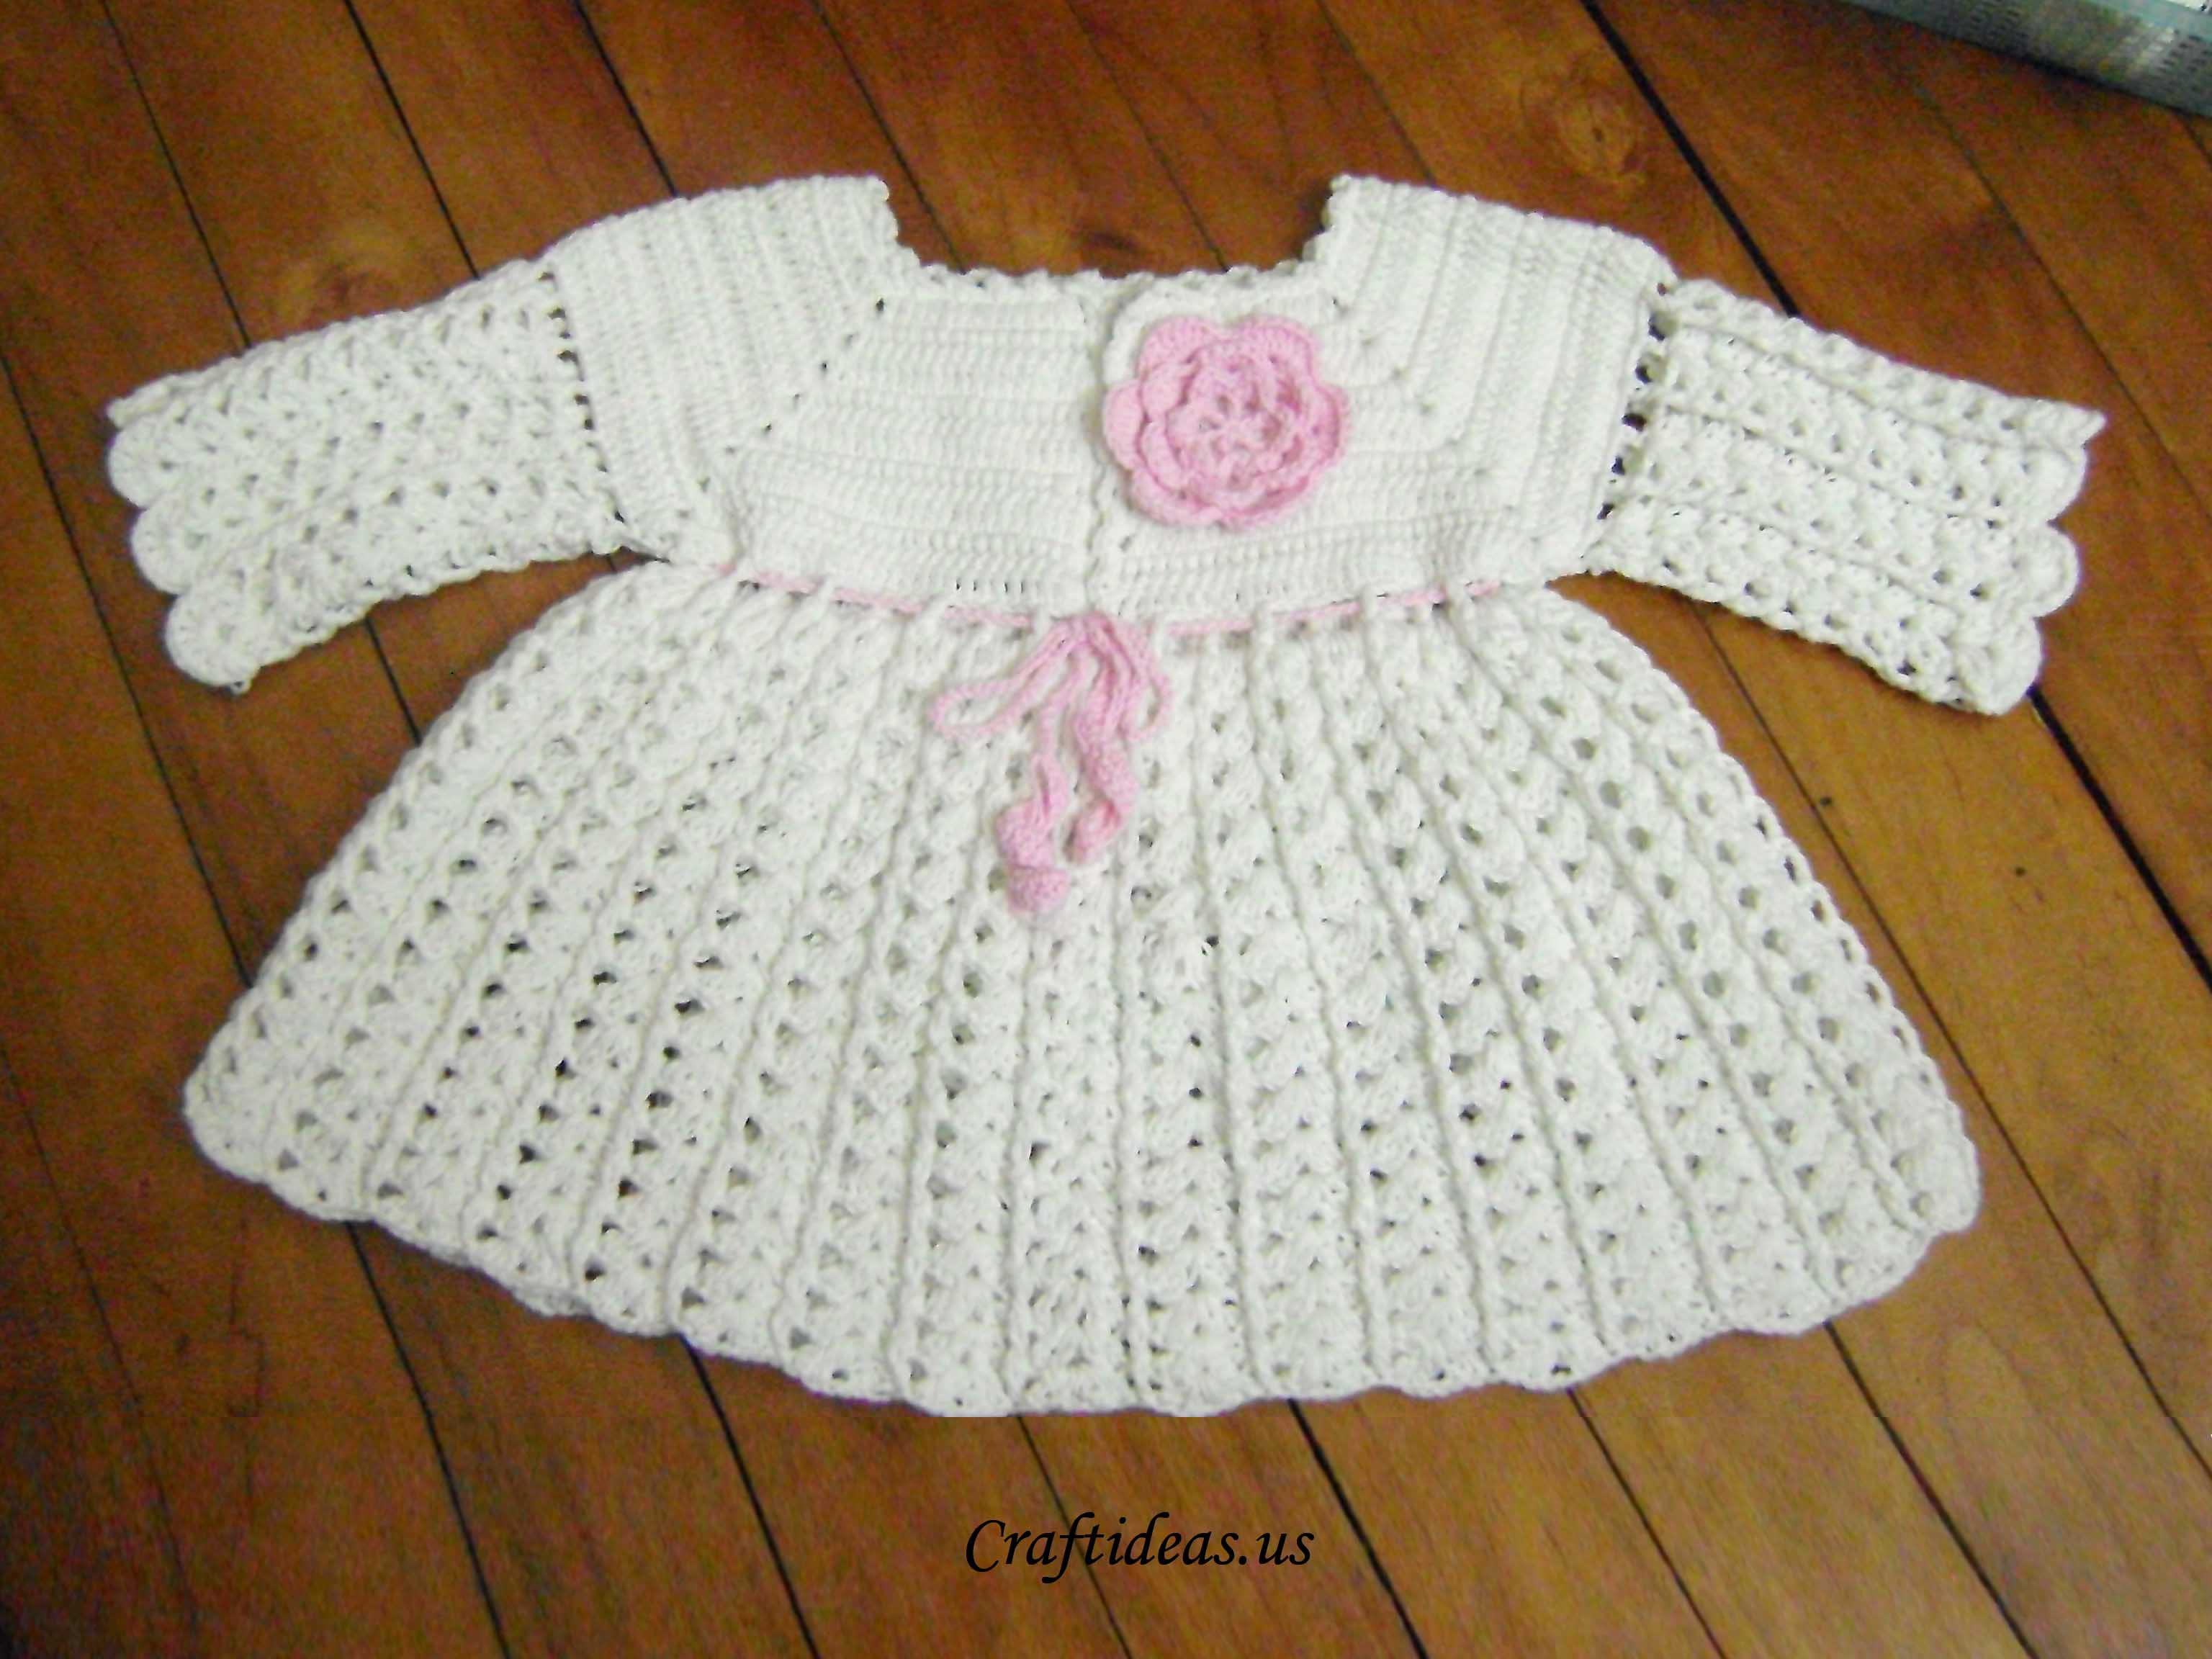 Crochet Patterns Little Girl Dresses : Crochet dress for little girls (long sleeves) Craft Ideas Crafts ...